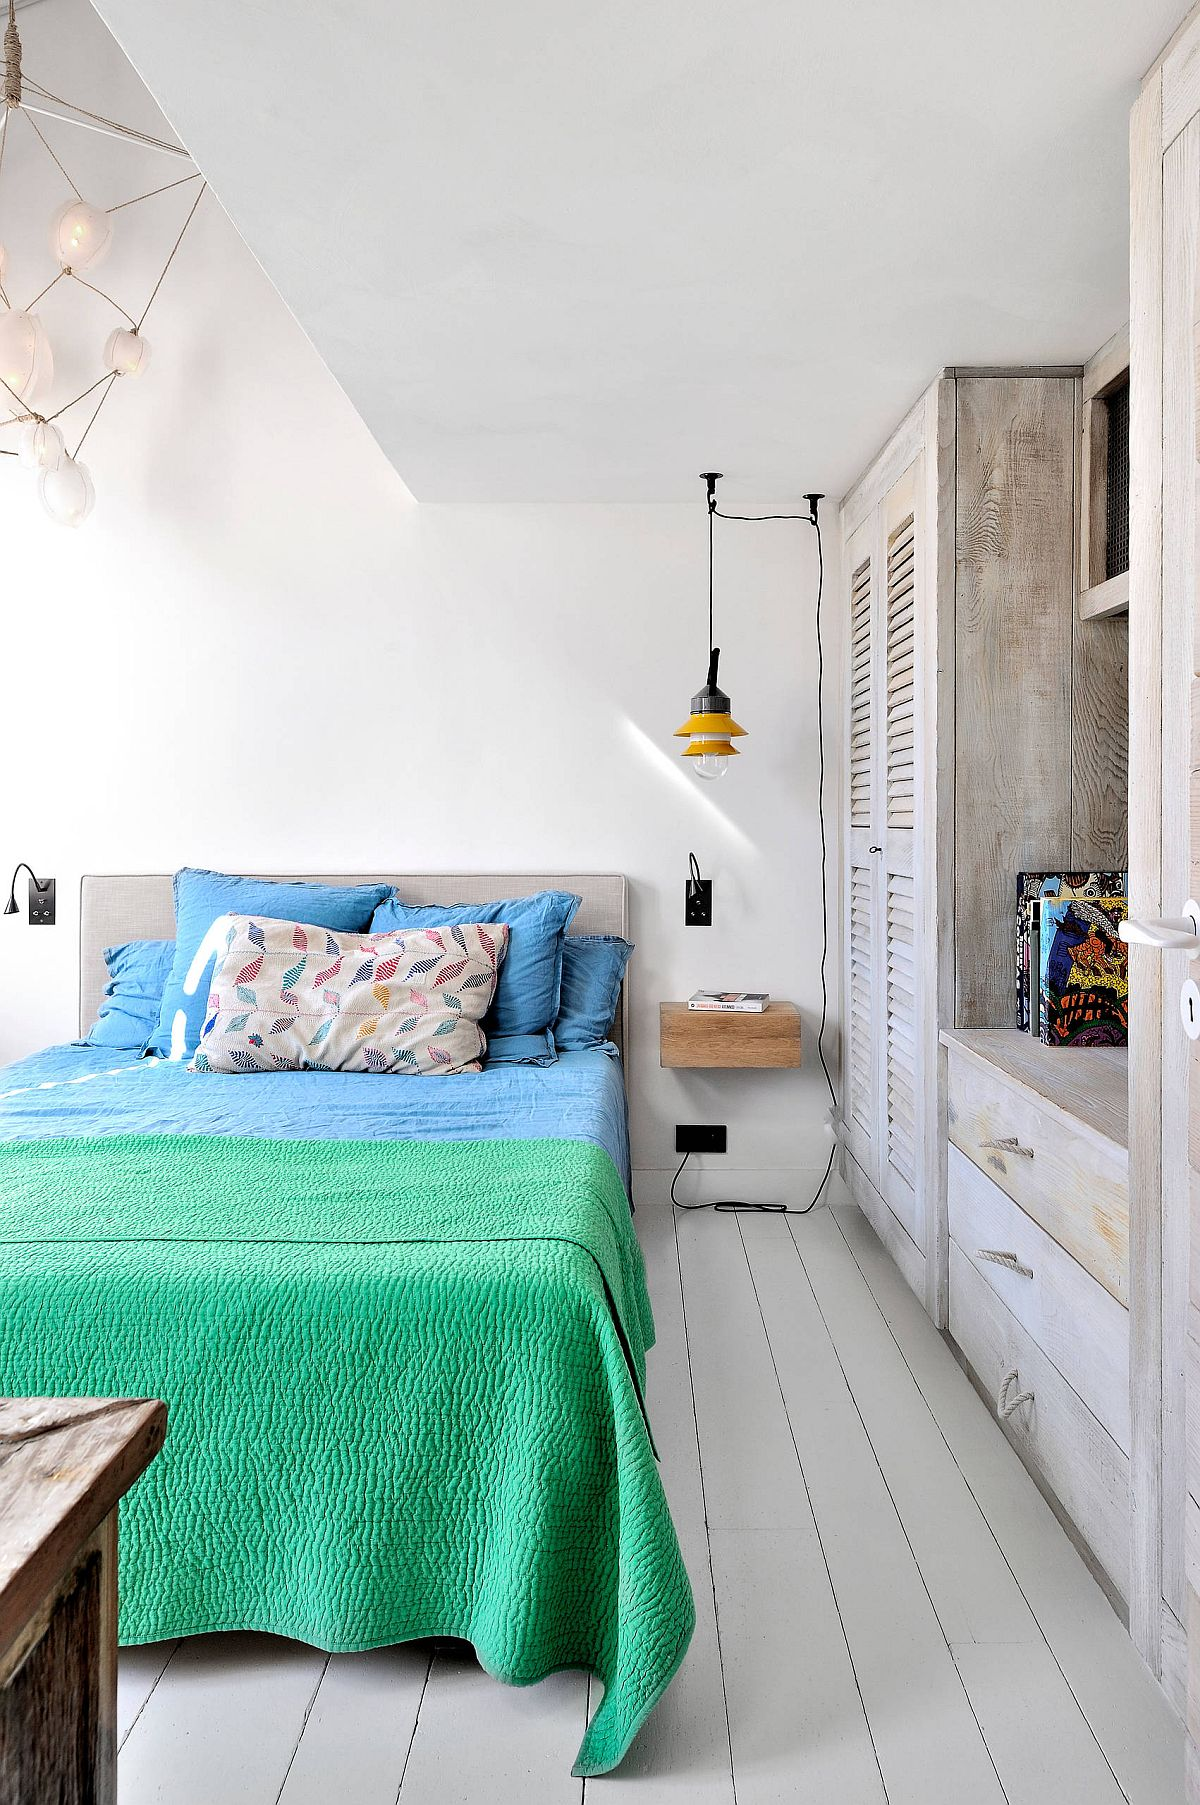 Brilliant use of colorful bedding brings life to this monochromatic bedroom in white